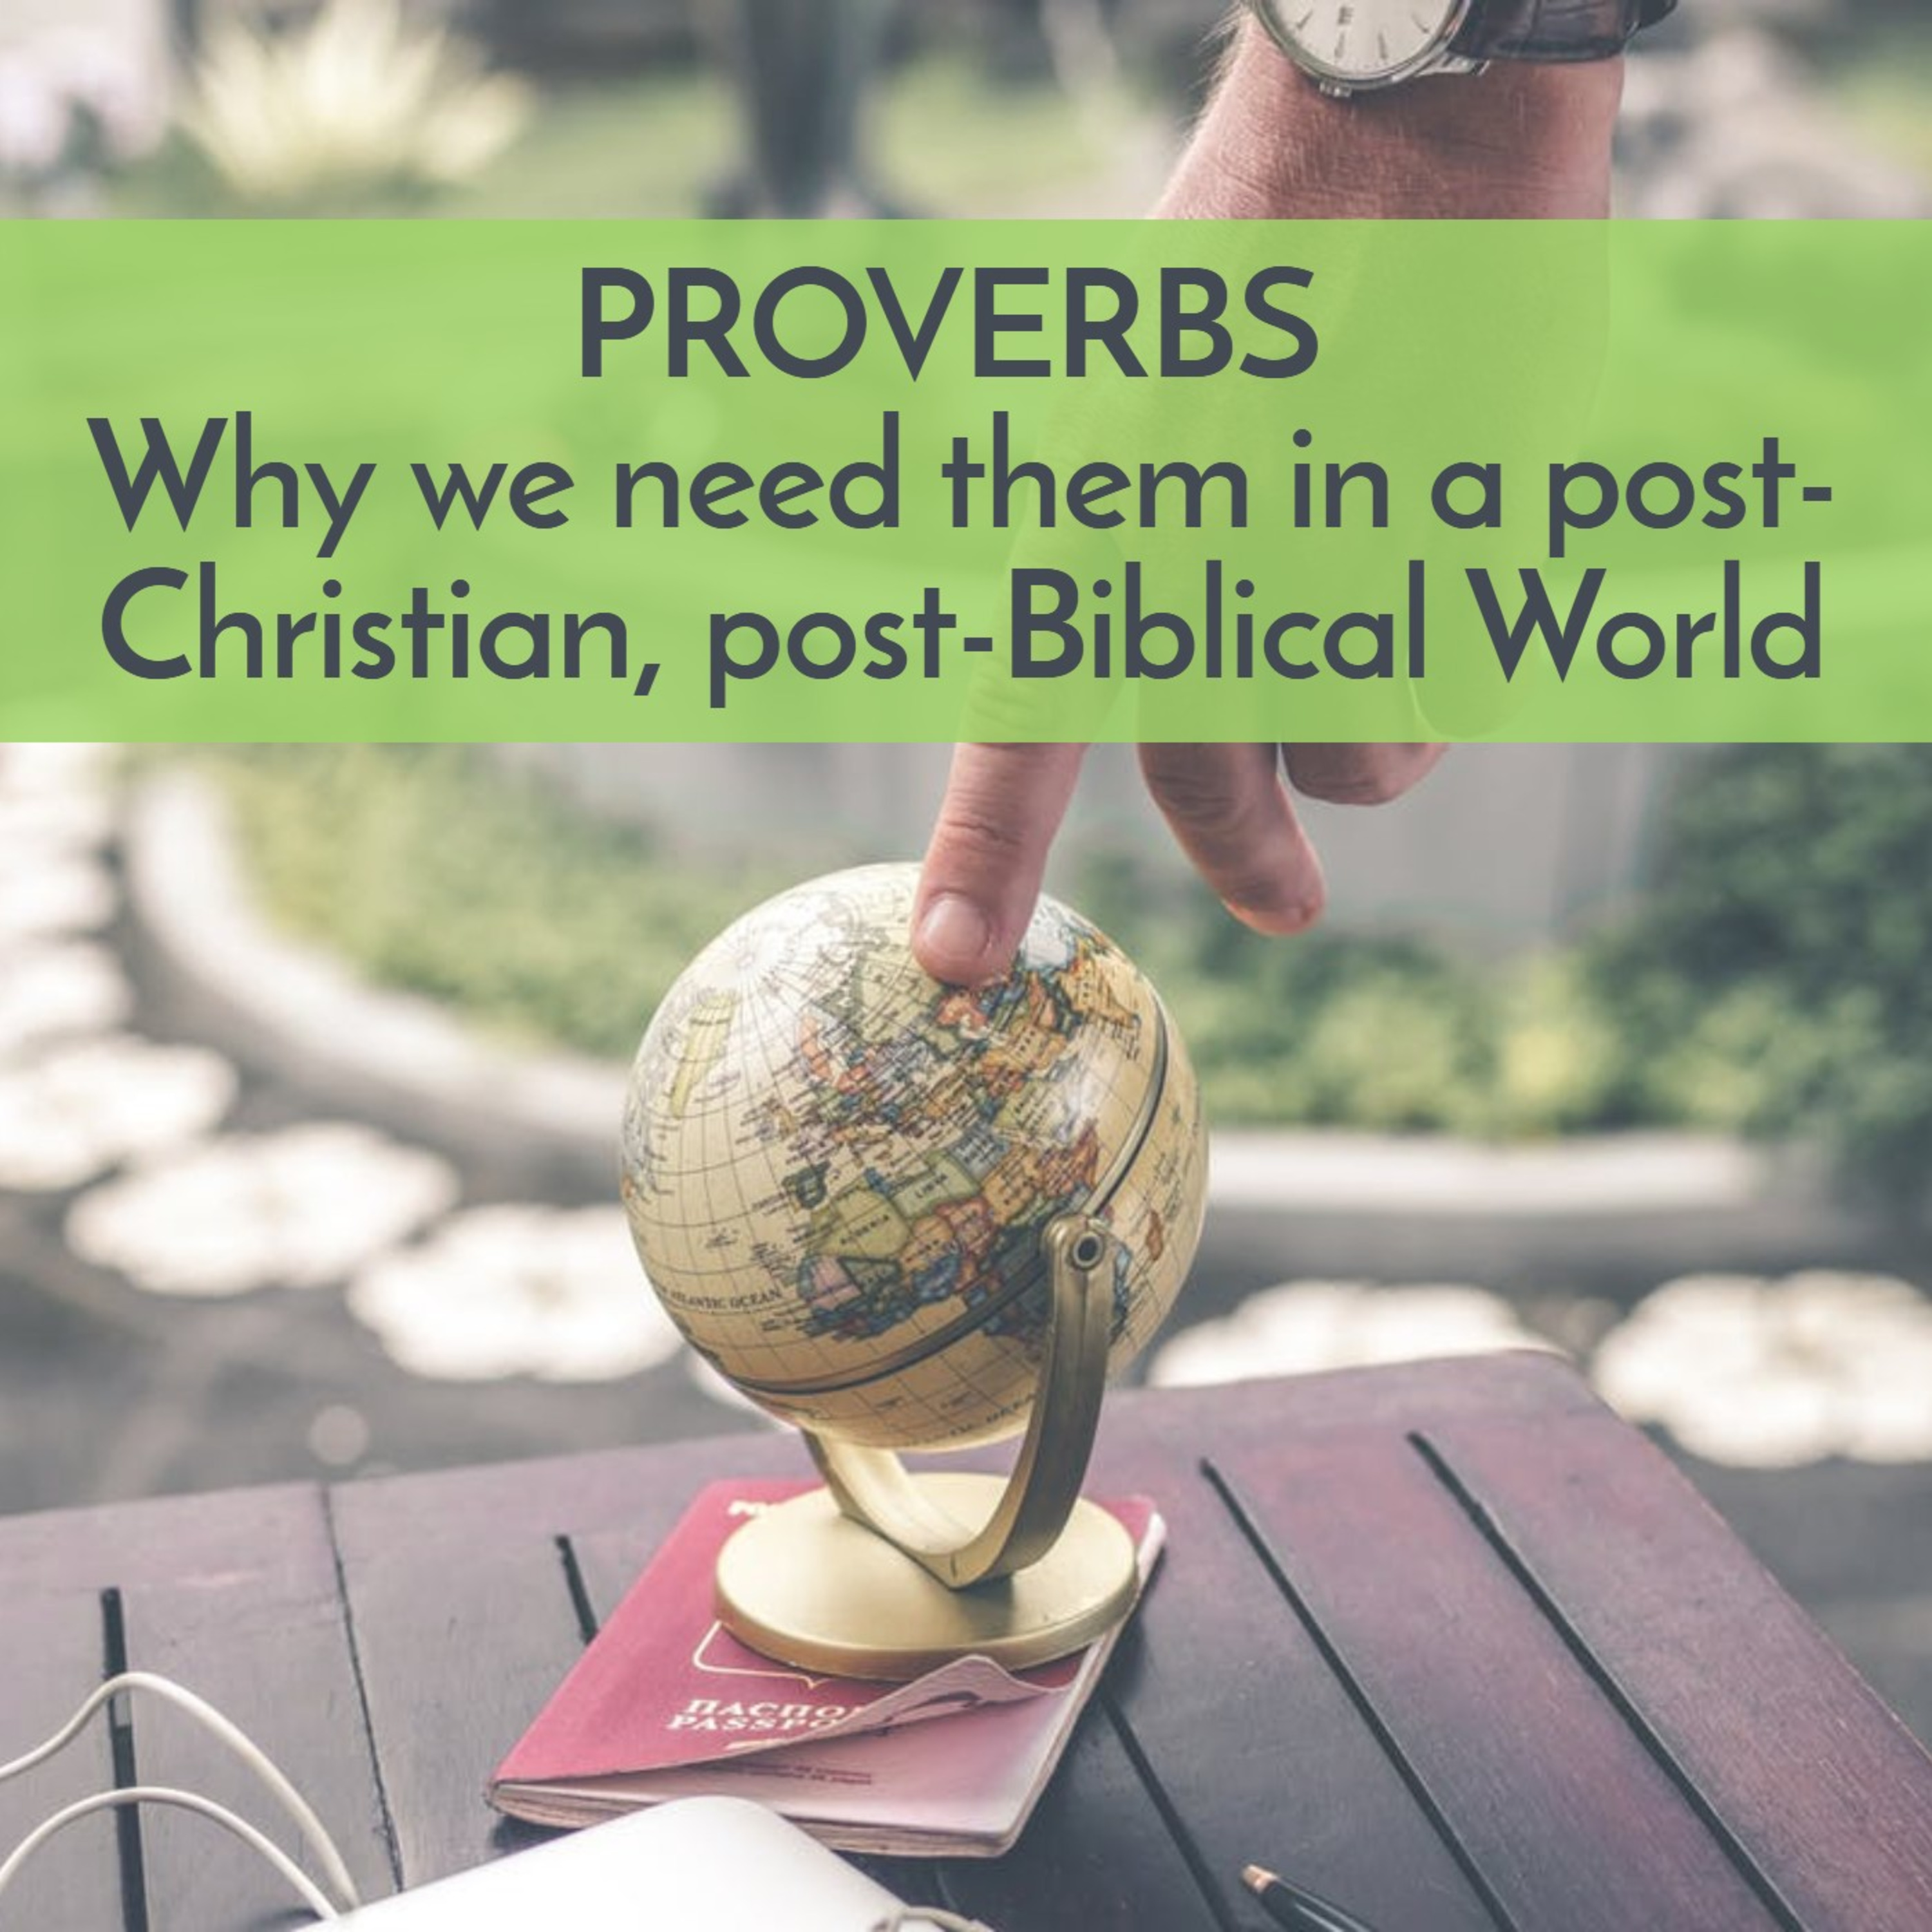 Proverbs, part one: WHY we need it in our post-Christian, post-Biblical world